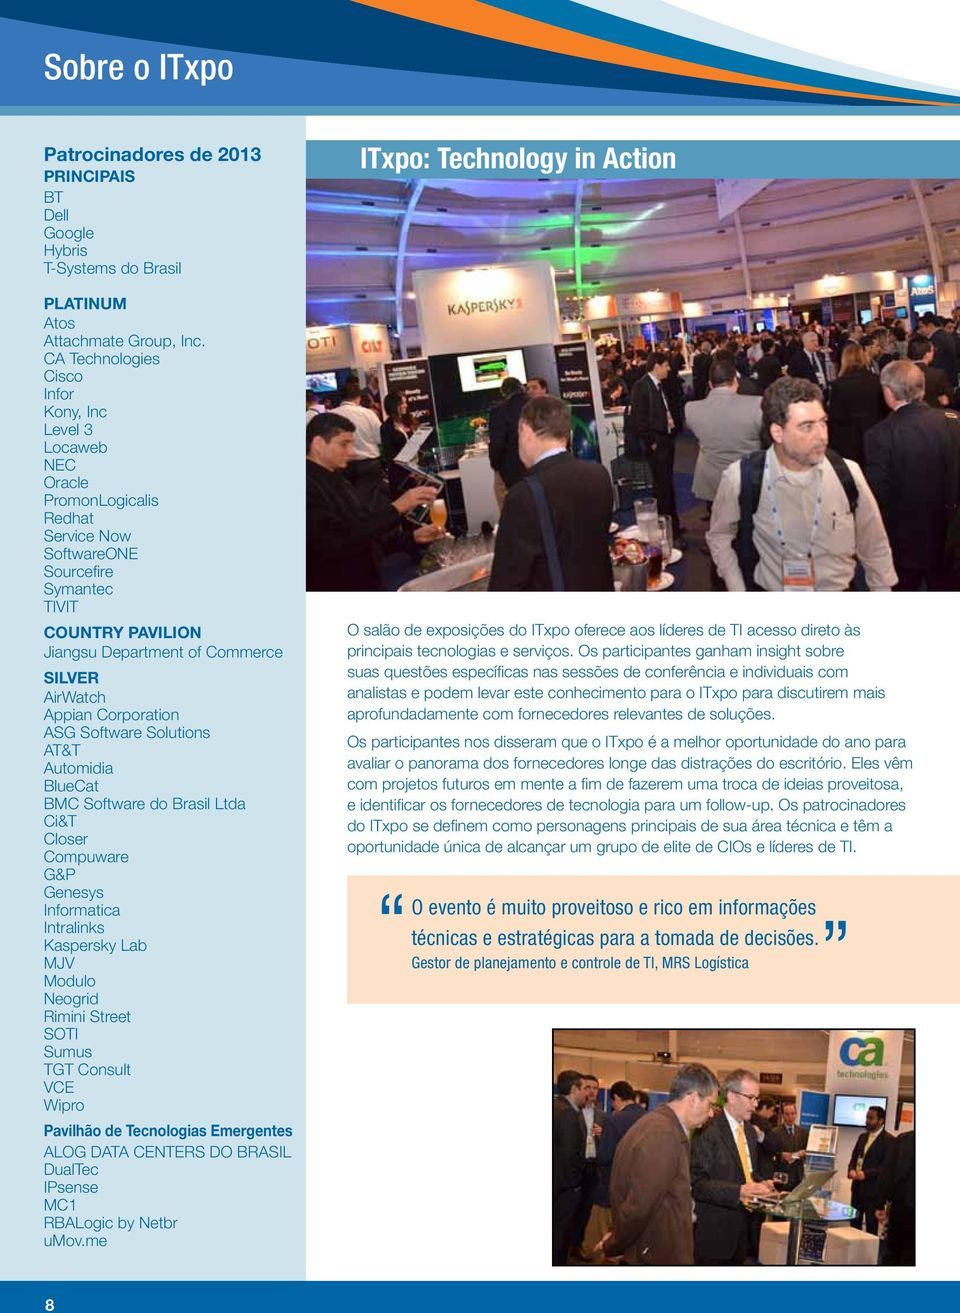 AirWatch Appian Corporation ASG Software Solutions AT&T Automidia BlueCat BMC Software do Brasil Ltda Ci&T Closer Compuware G&P Genesys Informatica Intralinks Kaspersky Lab MJV Modulo Neogrid Rimini